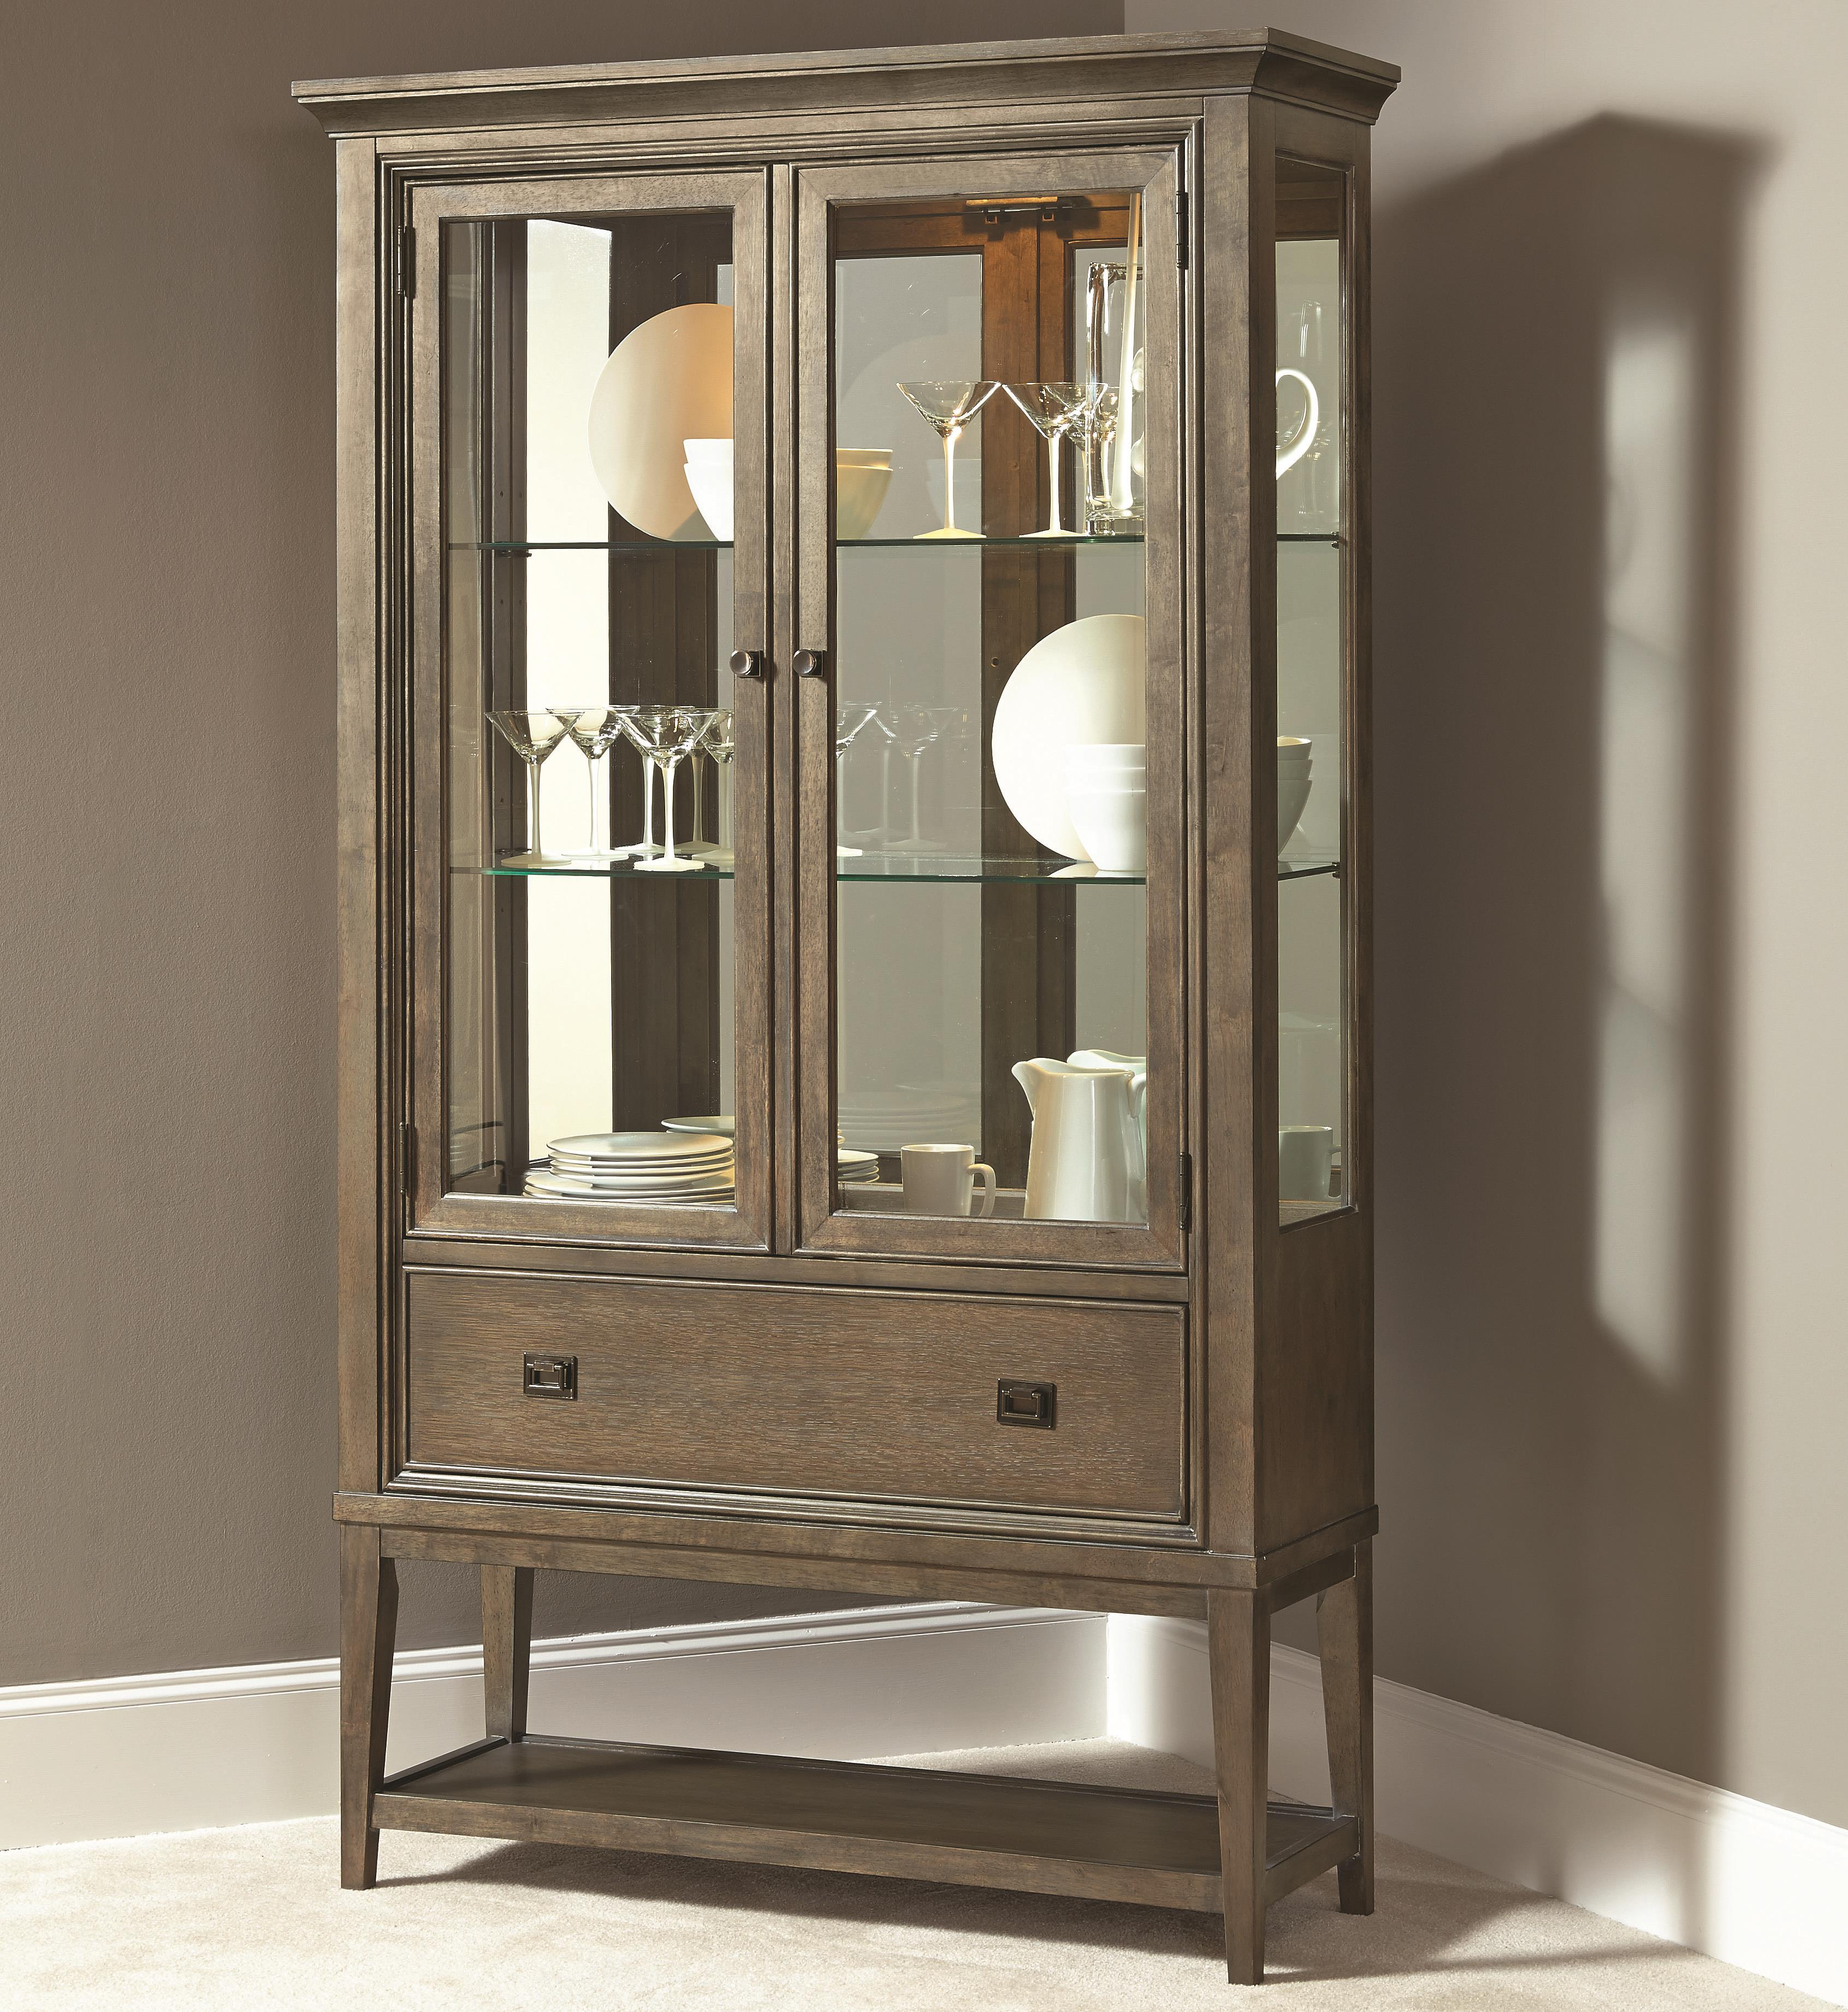 Contemporary Curio China Cabinet With 2 Glass Doors And Adjustable Shelves  And A Mirror Back With